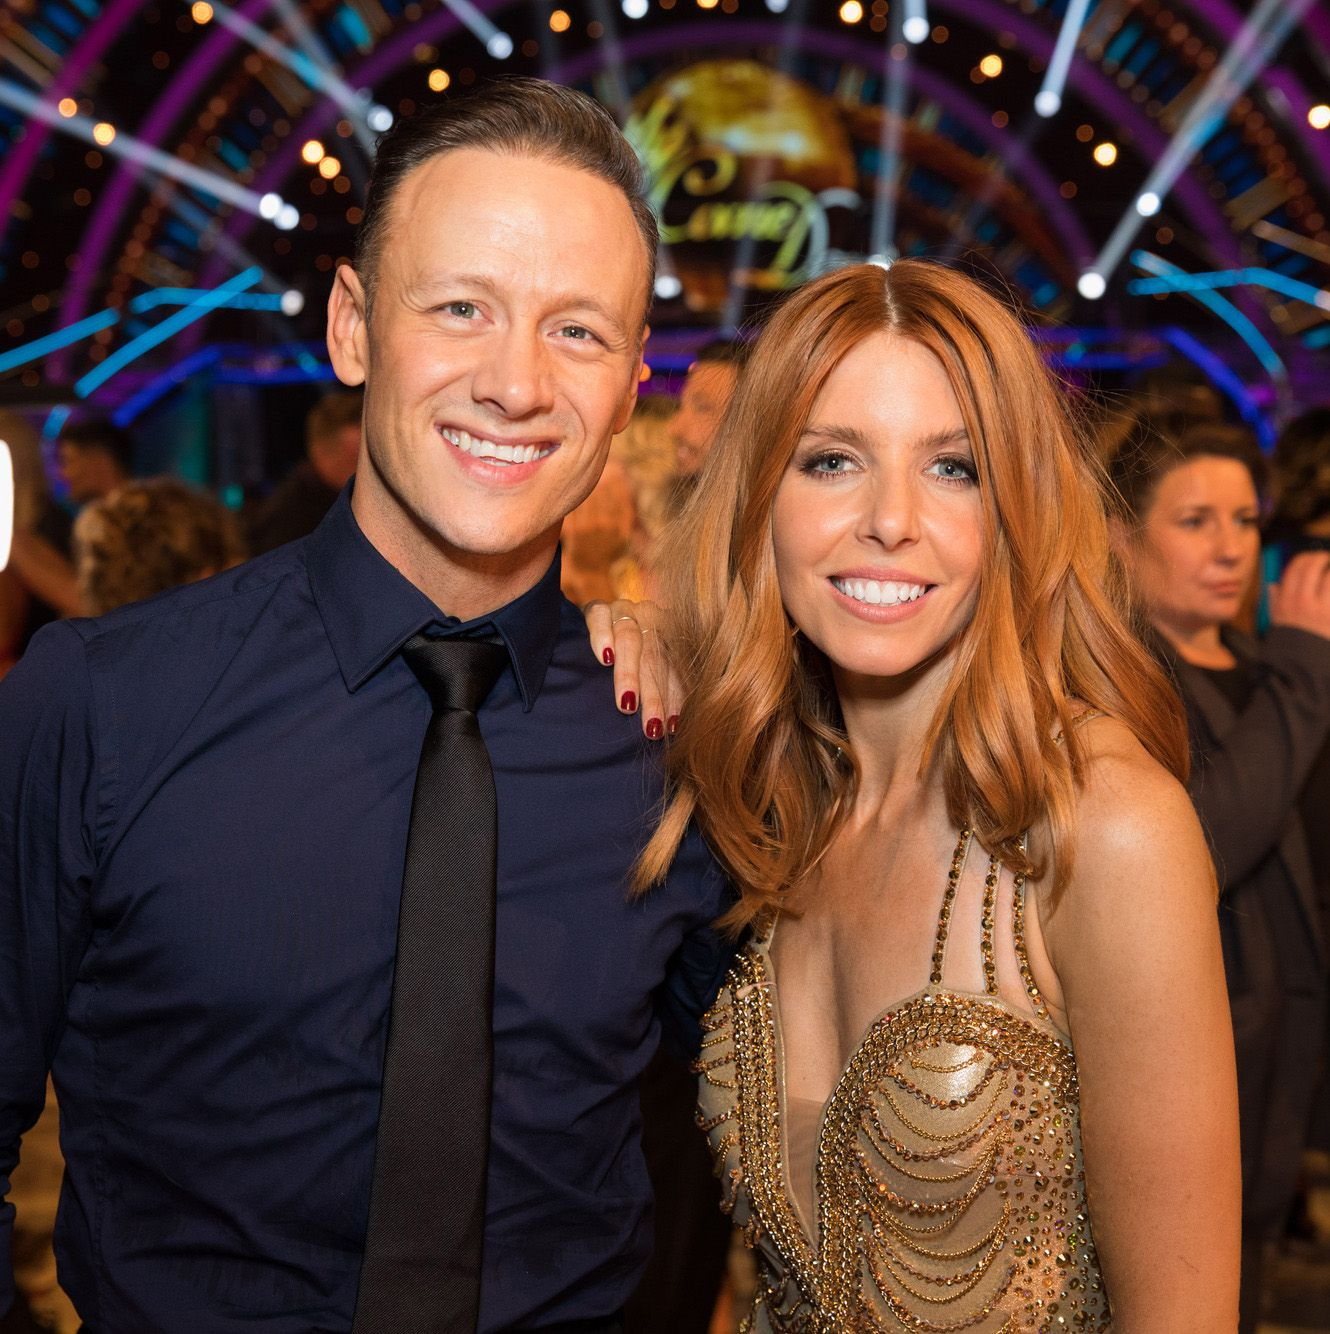 Kevin Clifton shares rare picture with Stacey Dooley